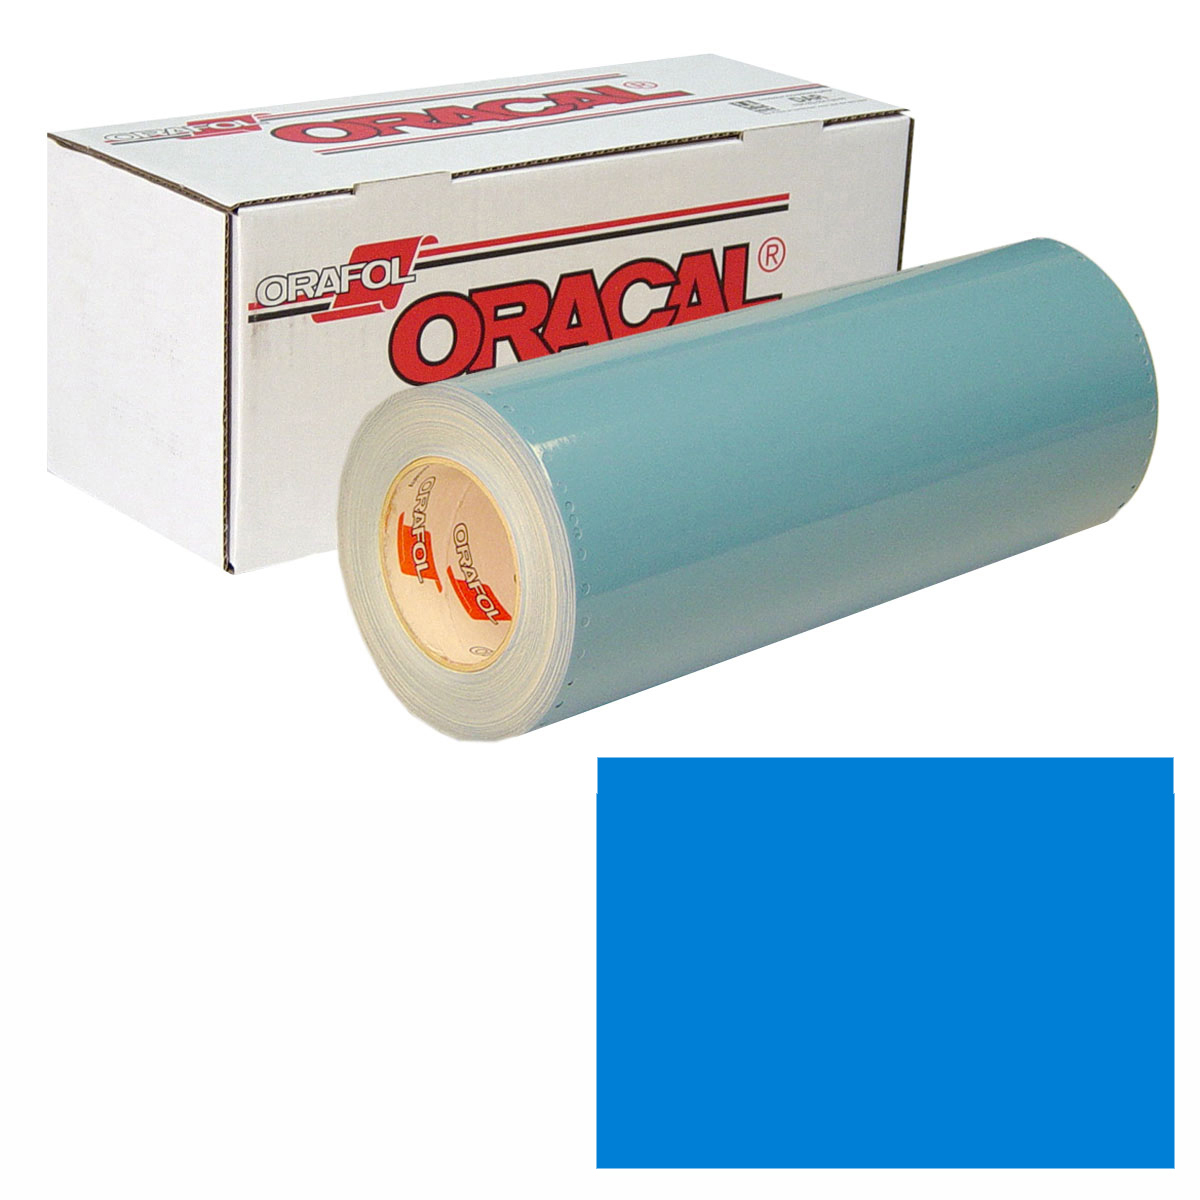 ORACAL 751 Unp 48in X 50yd 517 Euro Blue